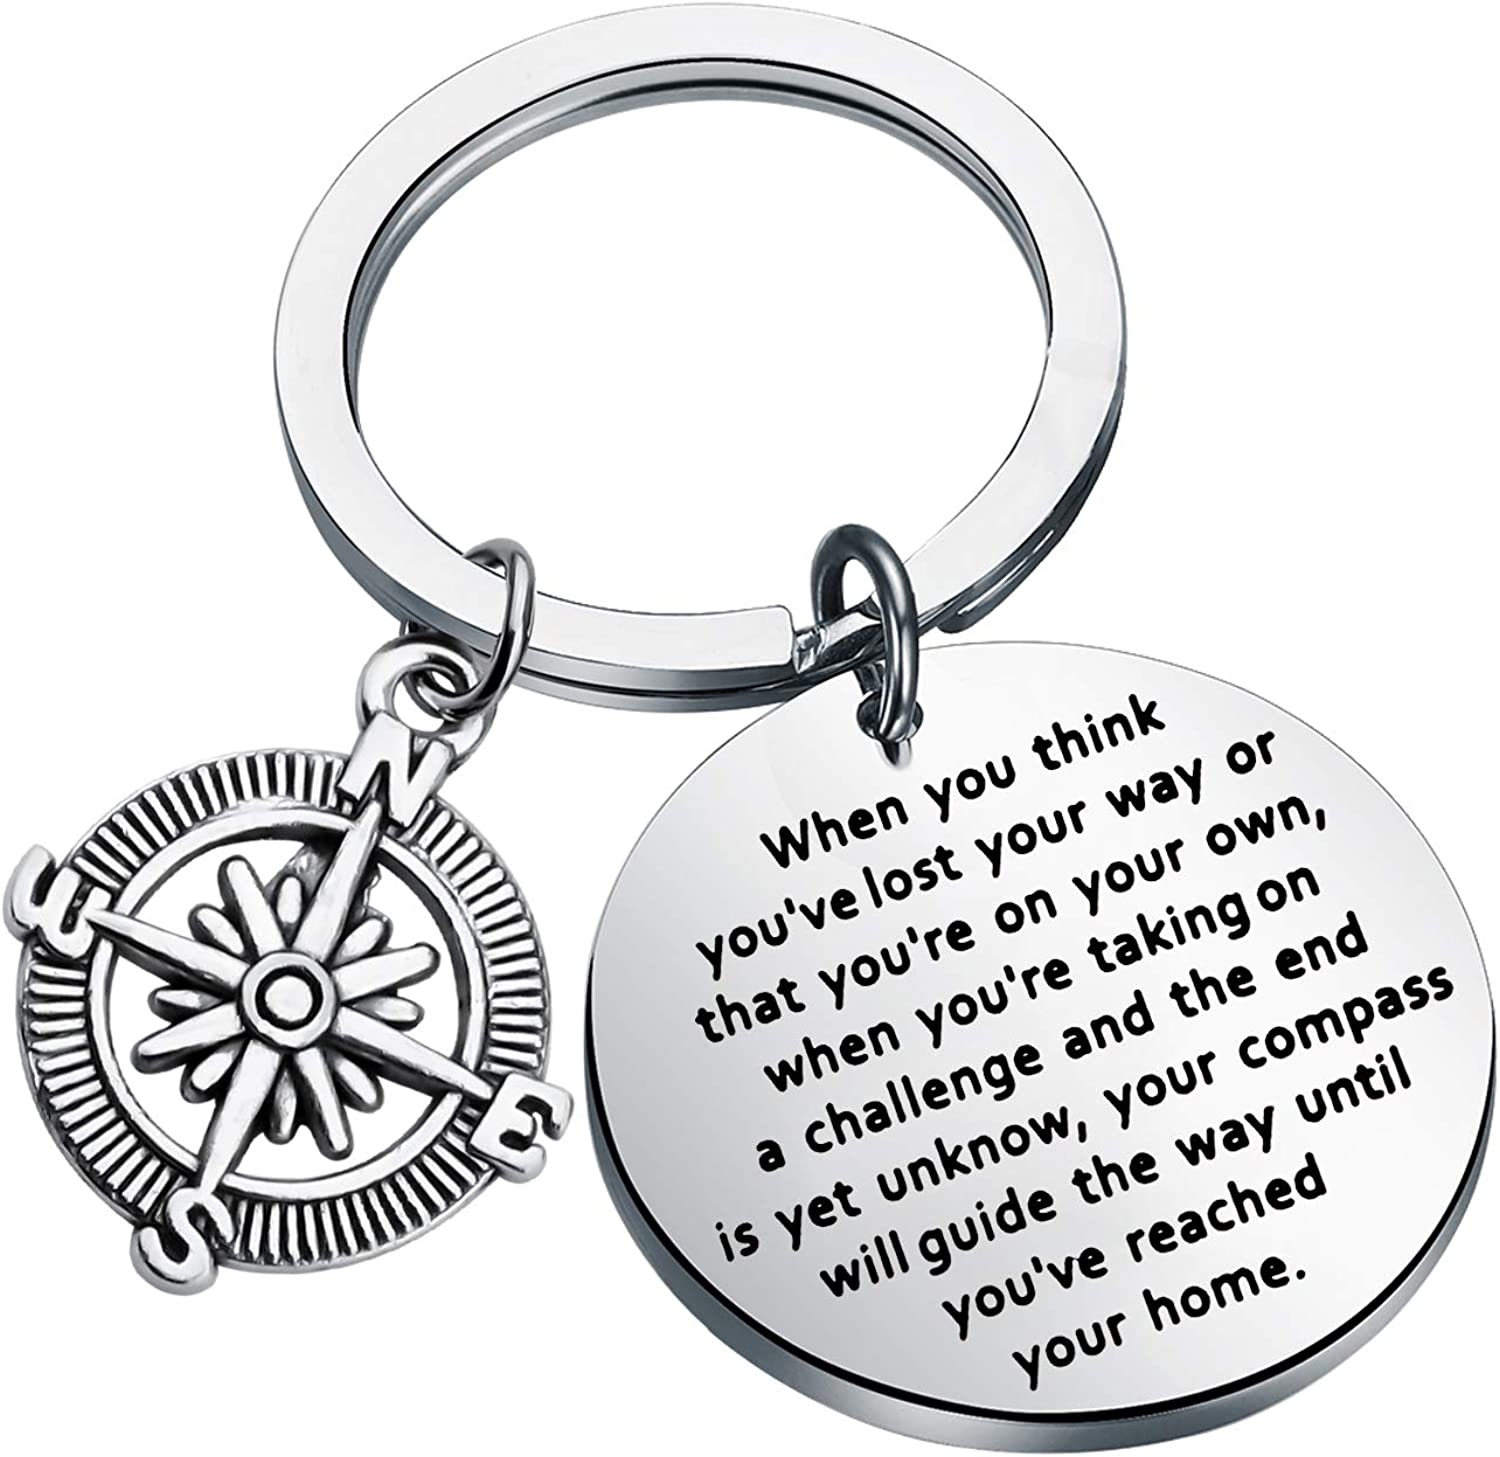 WSNANG Compass Keychain Your Compass Will Guide The Way Until You've Reached Your Home Keychain Inspirational Gifts Adventure Gift Graduation Gift for Grads